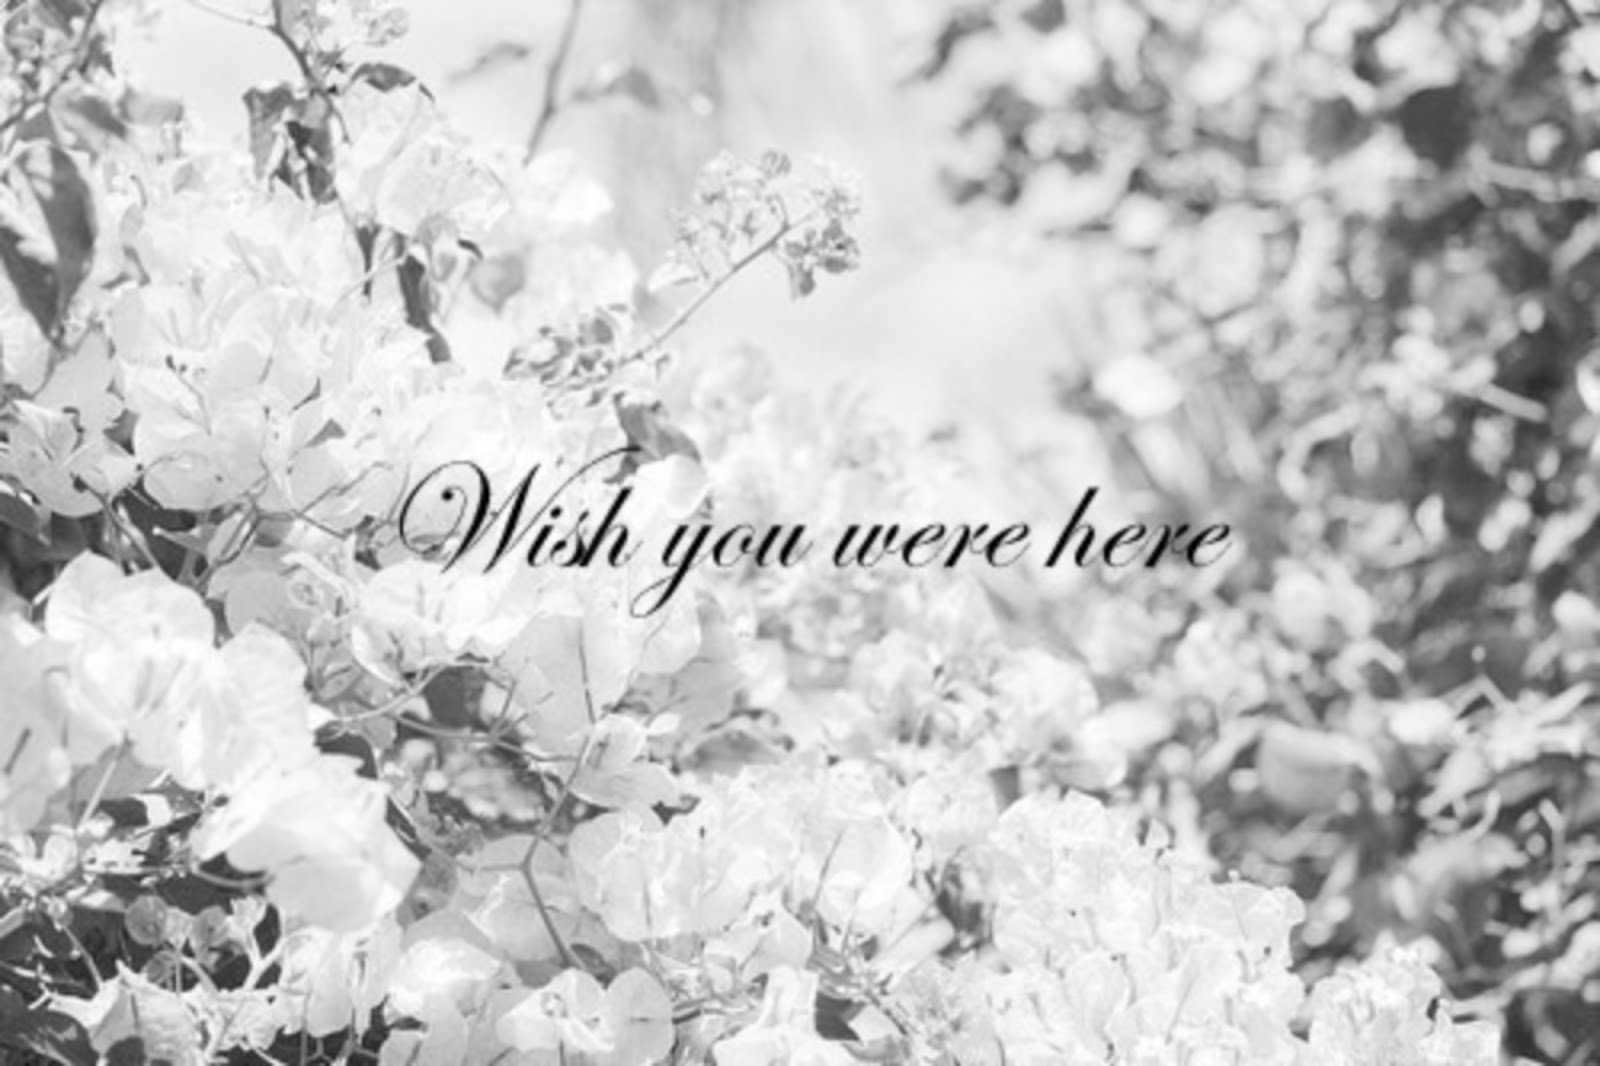 ! Wish you were here